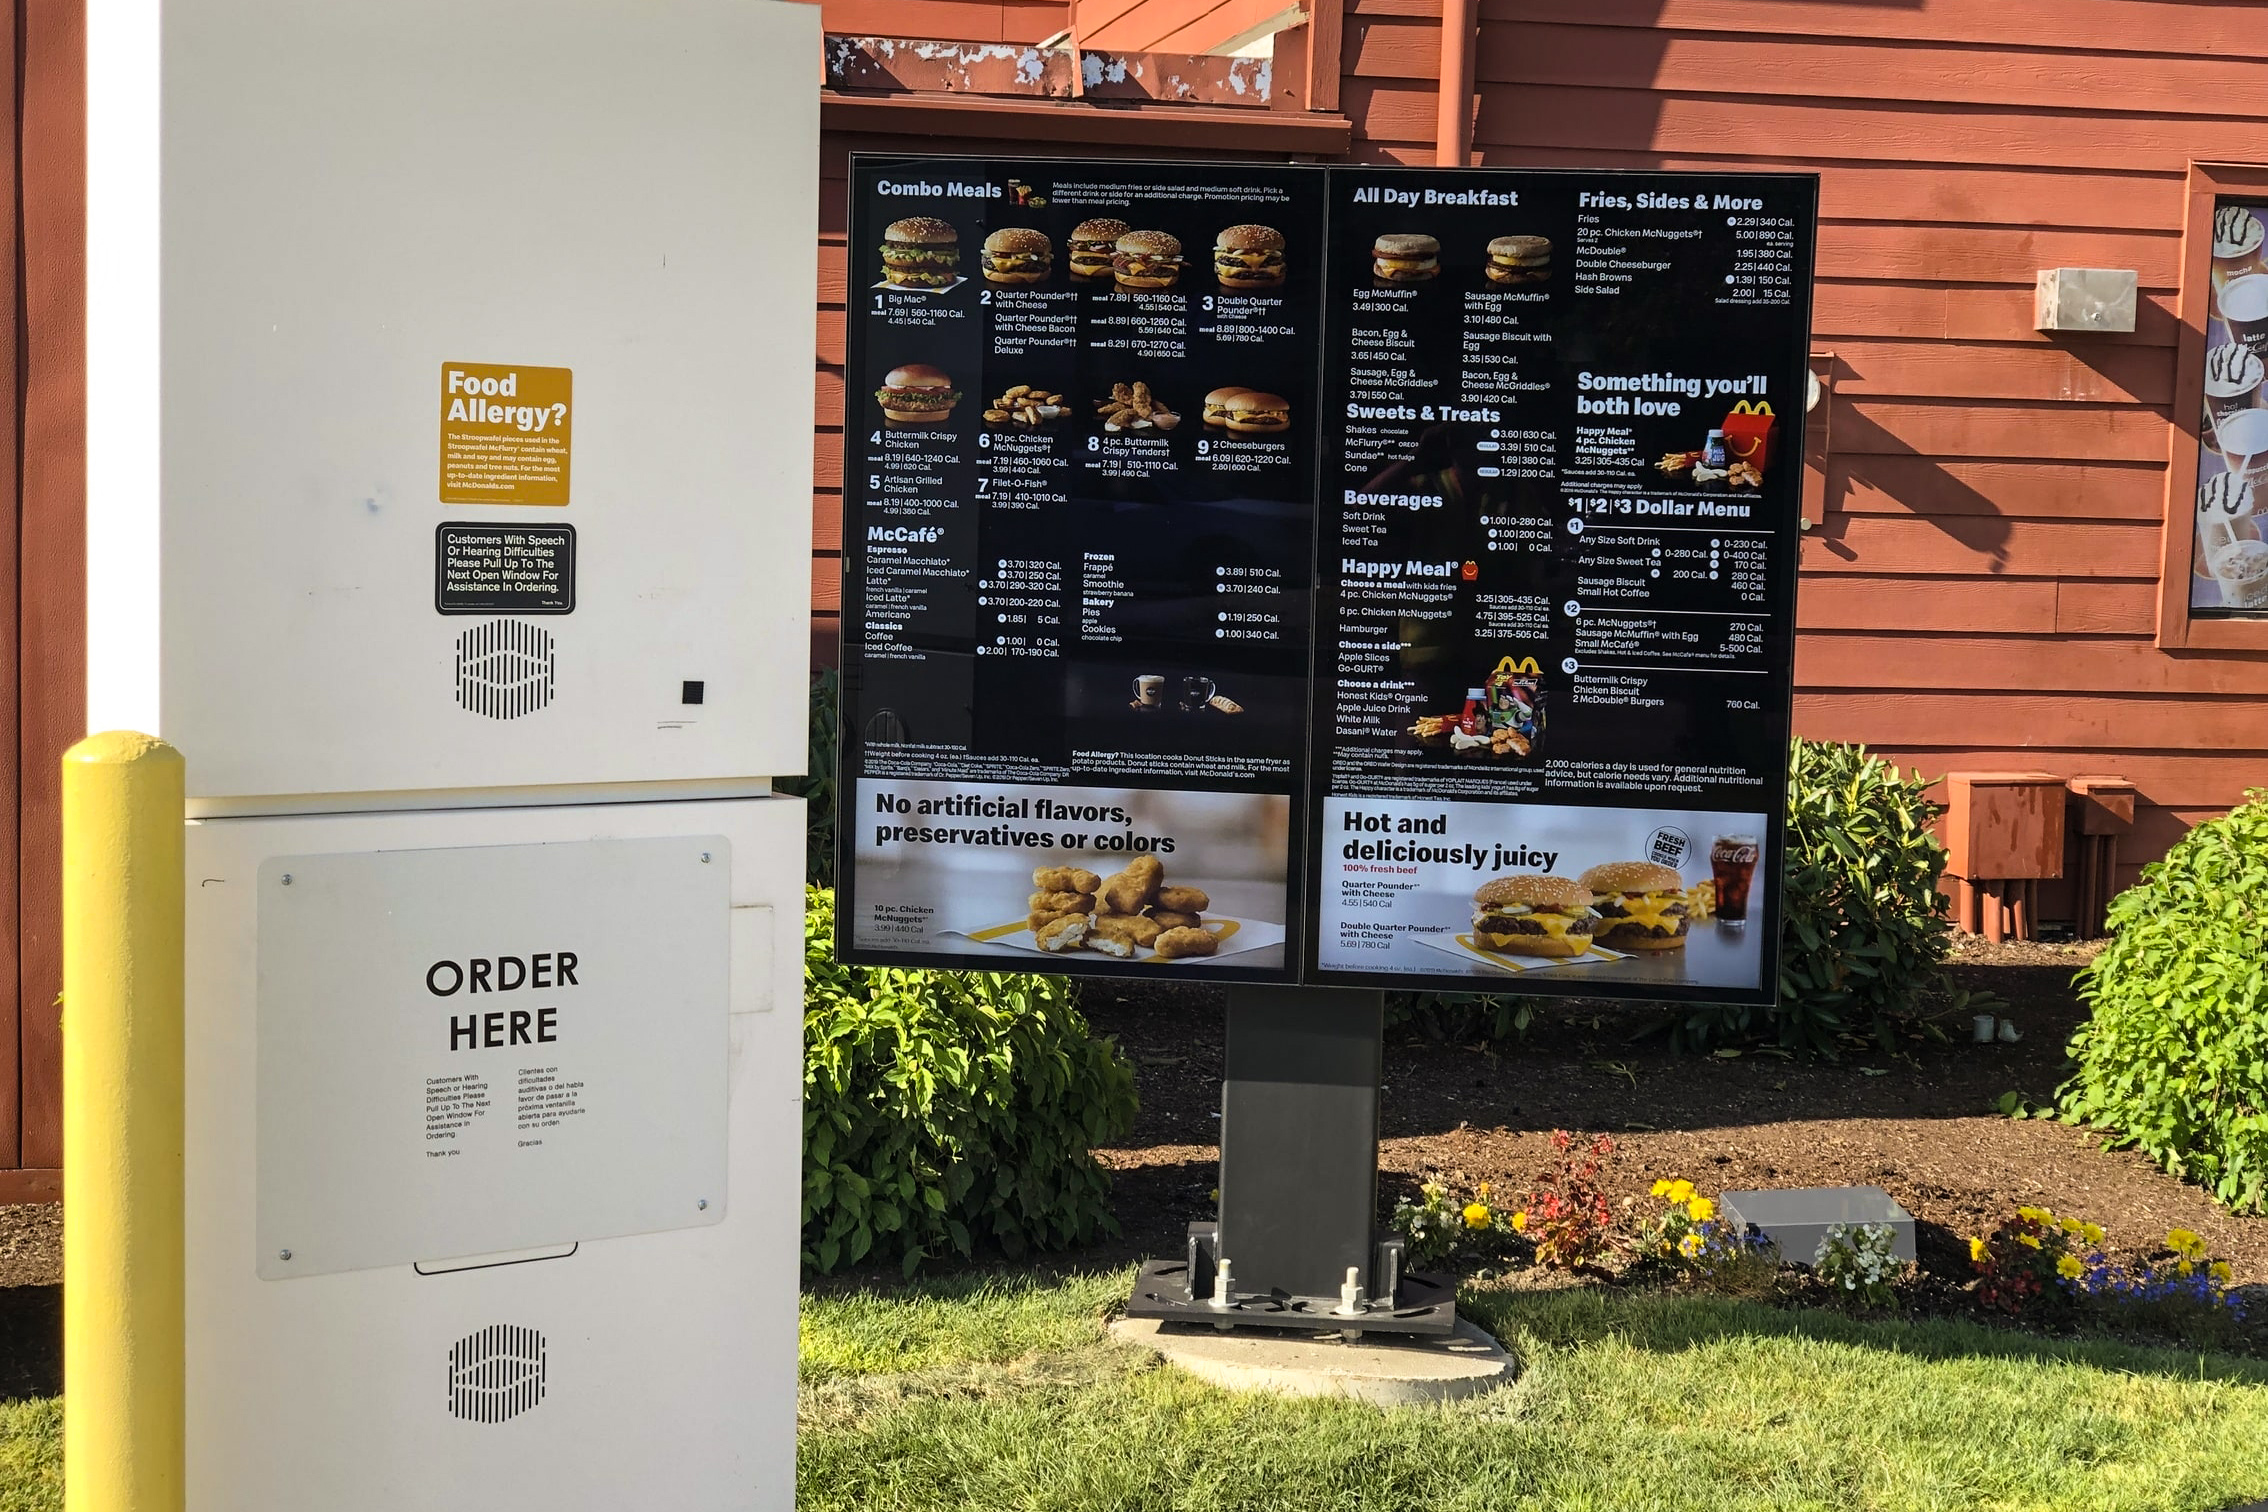 mcdonalds-replacement-program-digital-menu-boards-psco-7